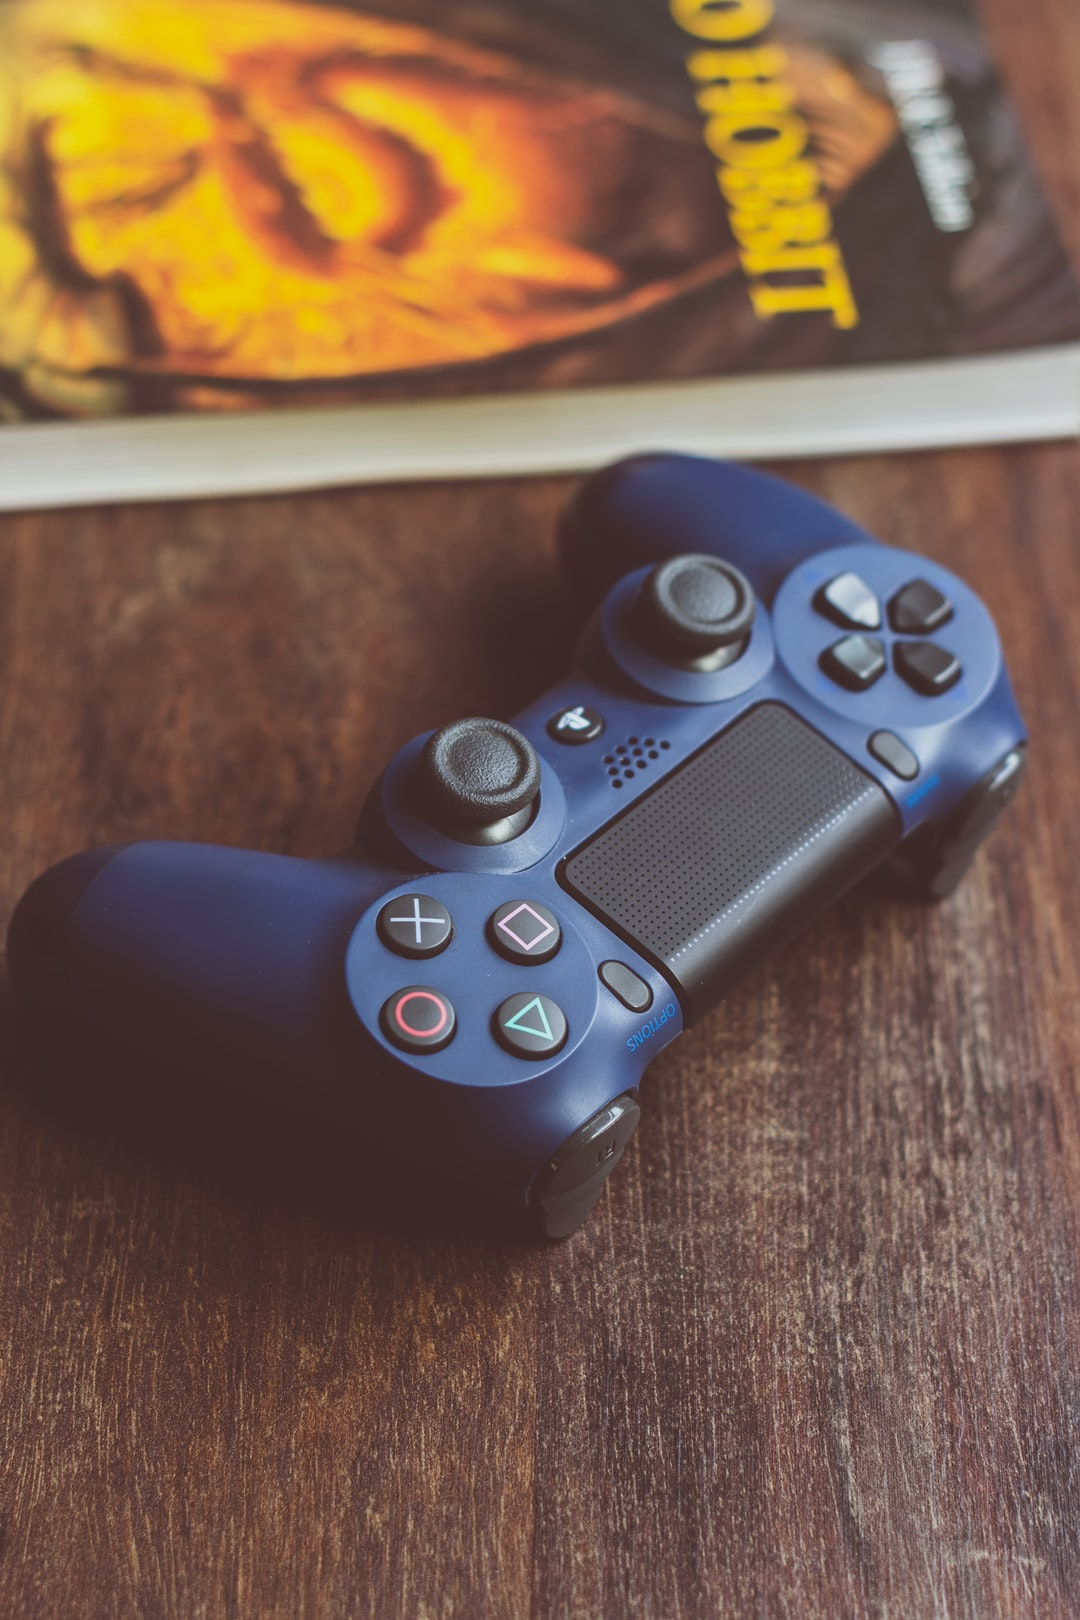 Best Gaming Console For Your Home and Entertaining Guests